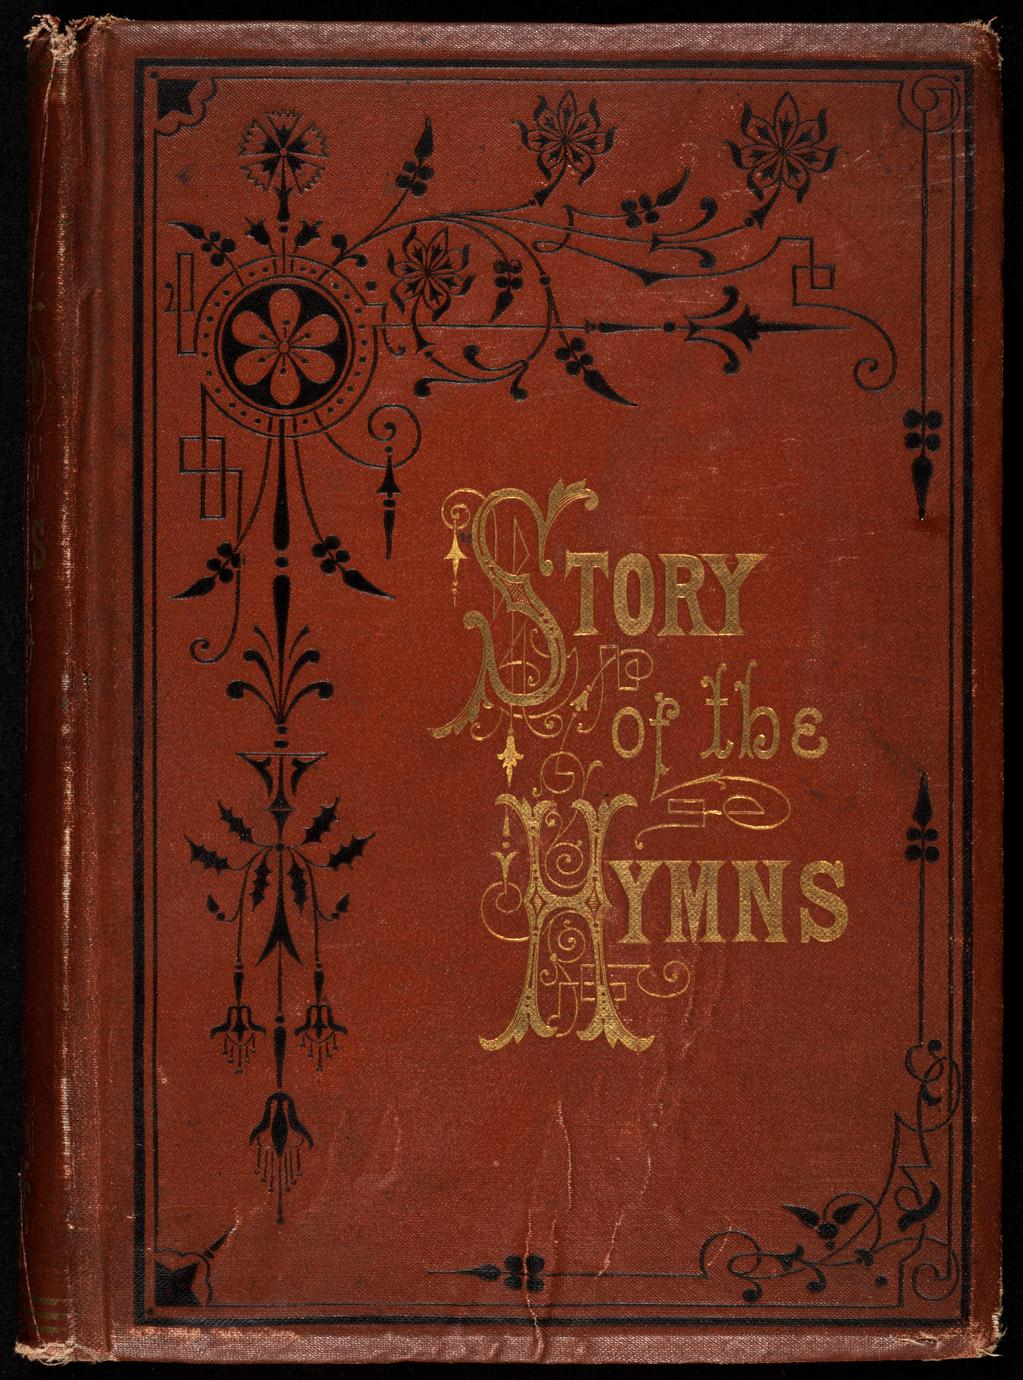 The story of the hymns ; or, Hymns that have a history : an account of the origin of hymns of personal religious experience (1 of 2)